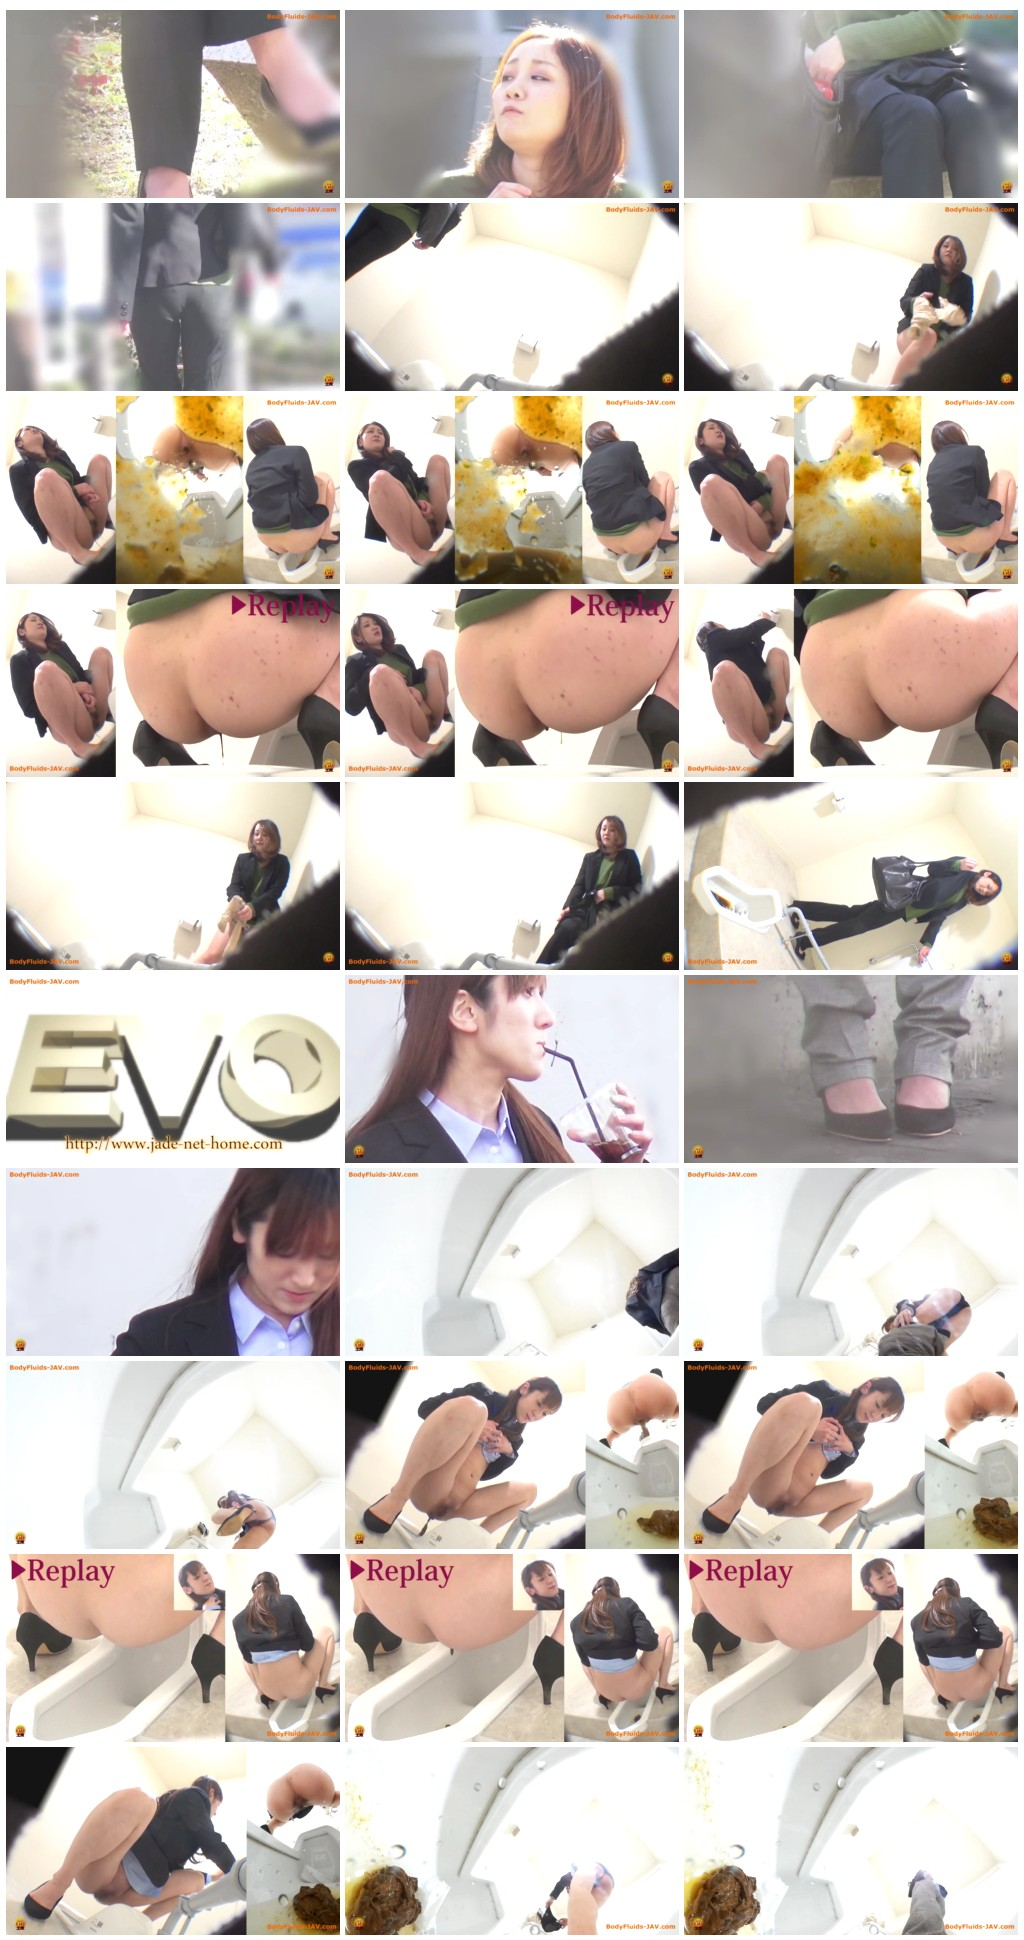 [JVC - 0033] Defecation of girls after eating outdoors. [HD 1080p]